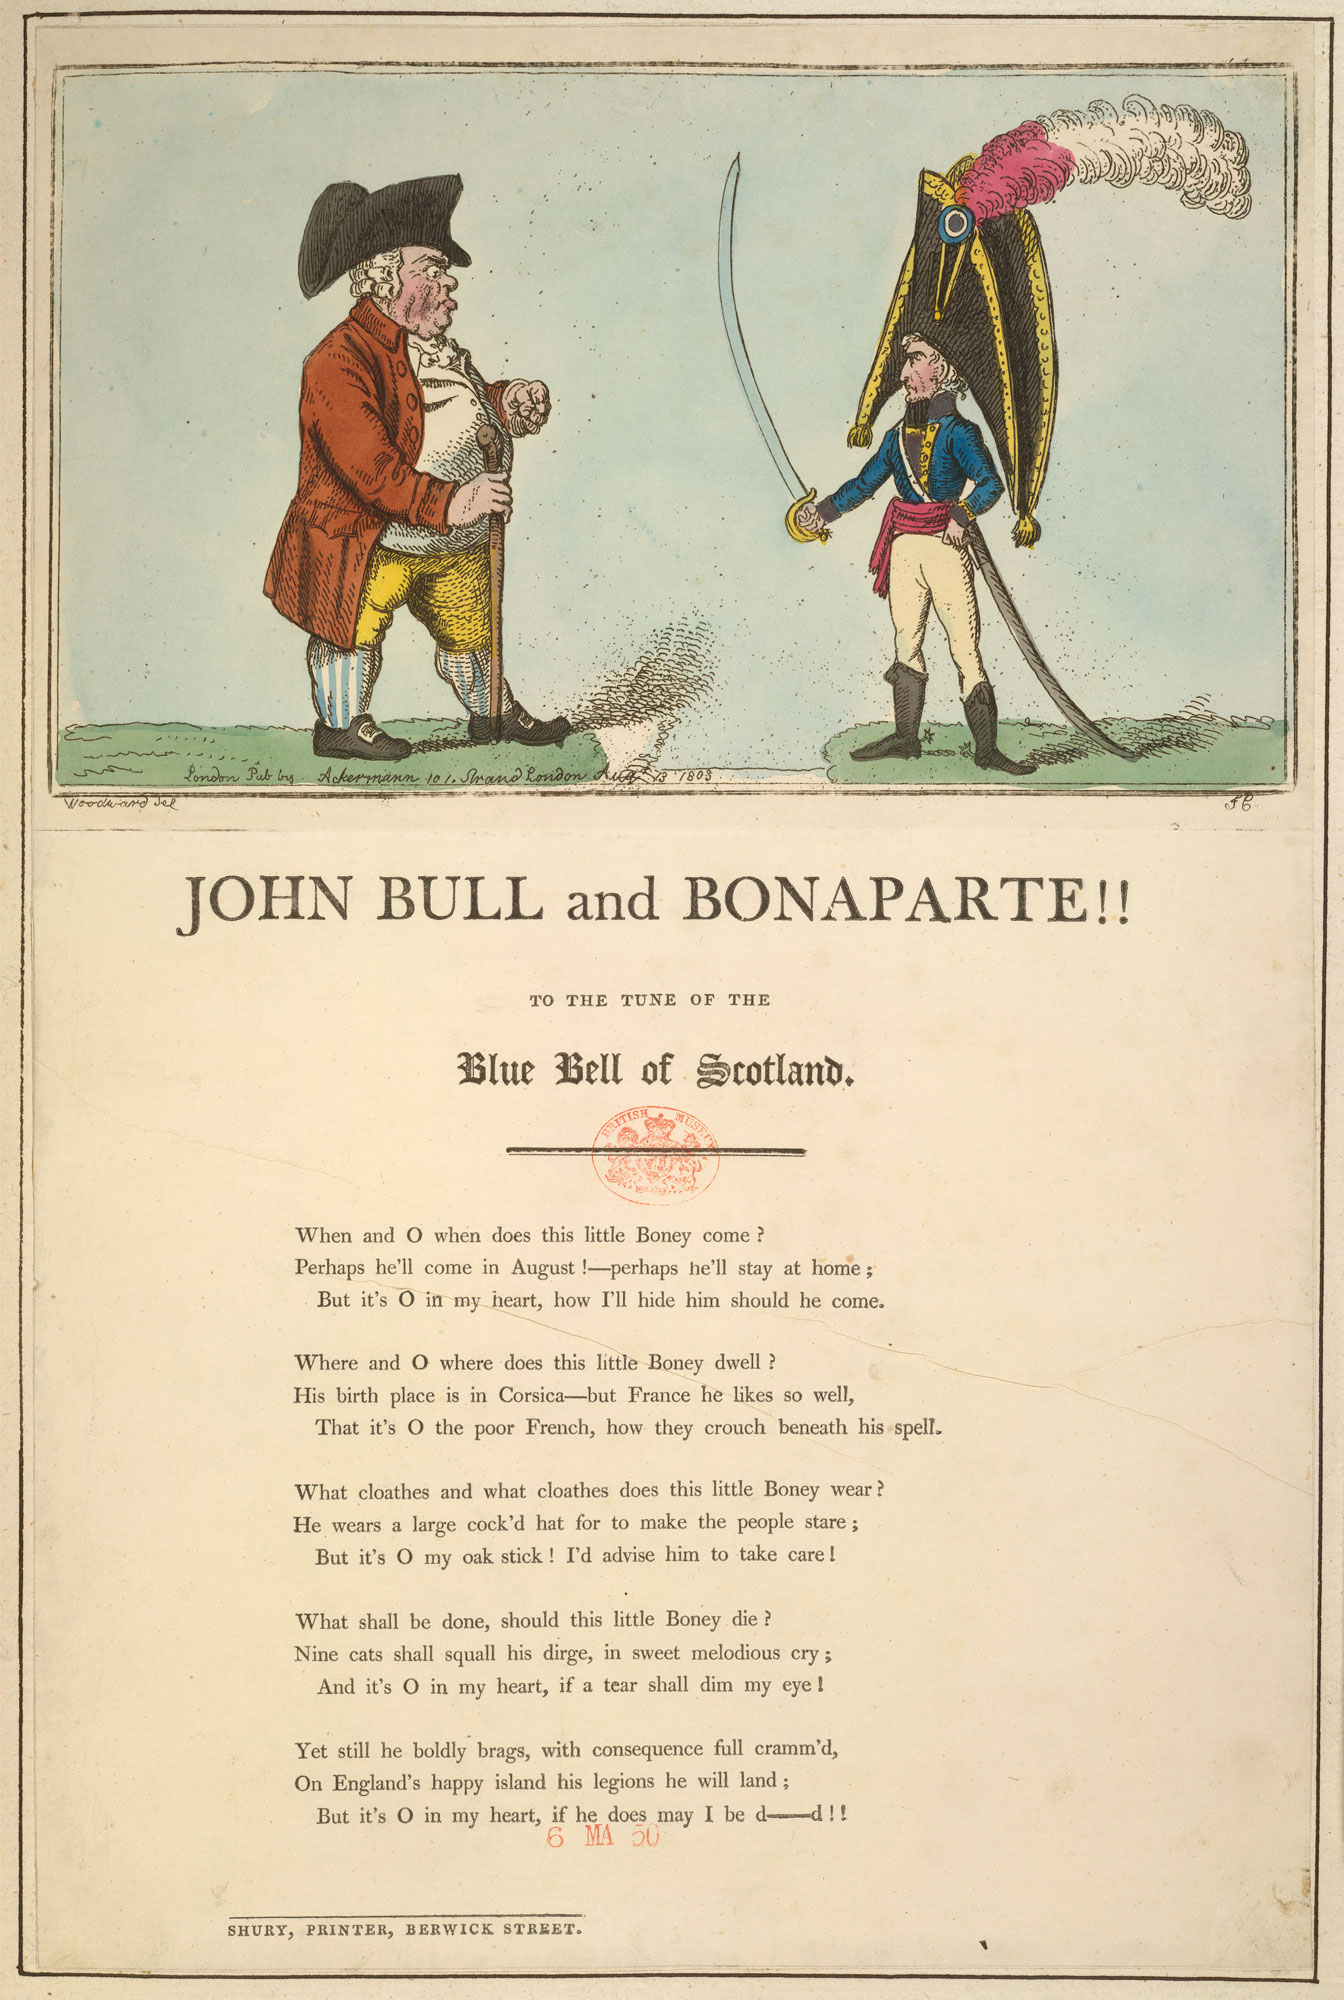 John Bull and Bonaparte, from a collection of material relating to the fear of a French invasion